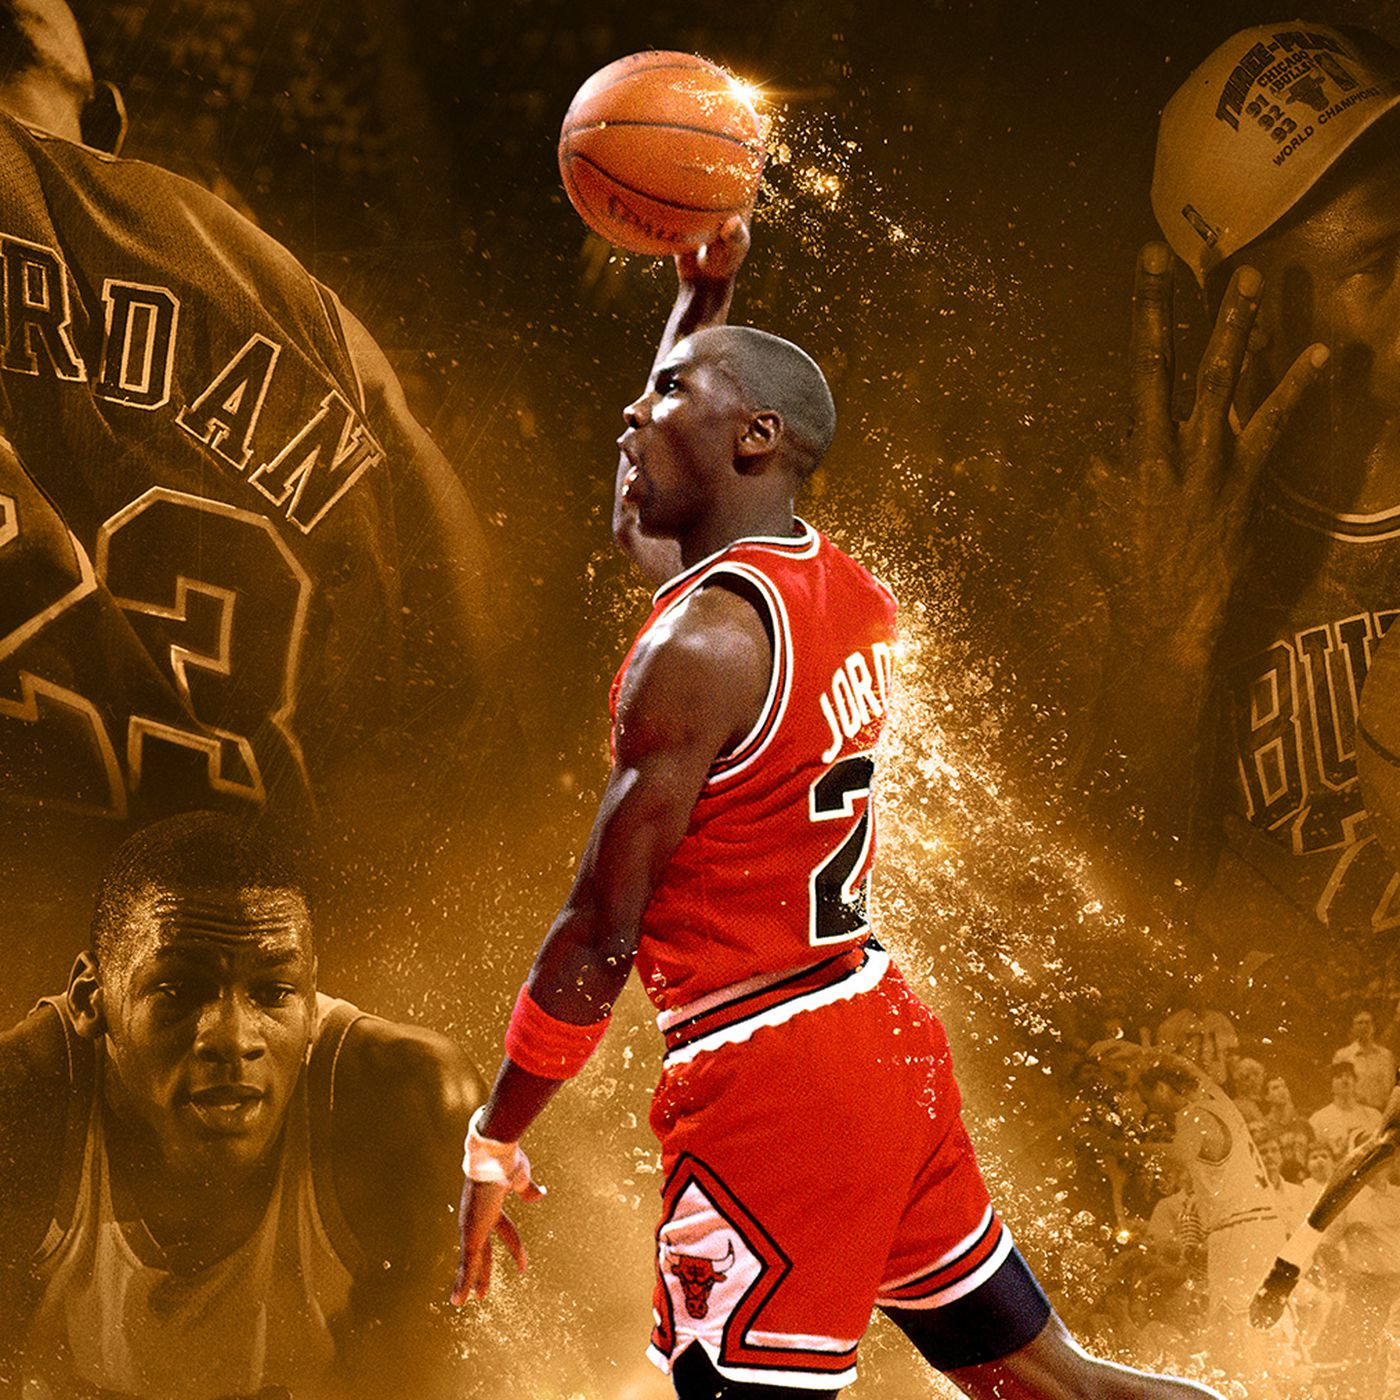 NBA 2K16 Special Edition brings back Michael Jordan on the cover - Polygon